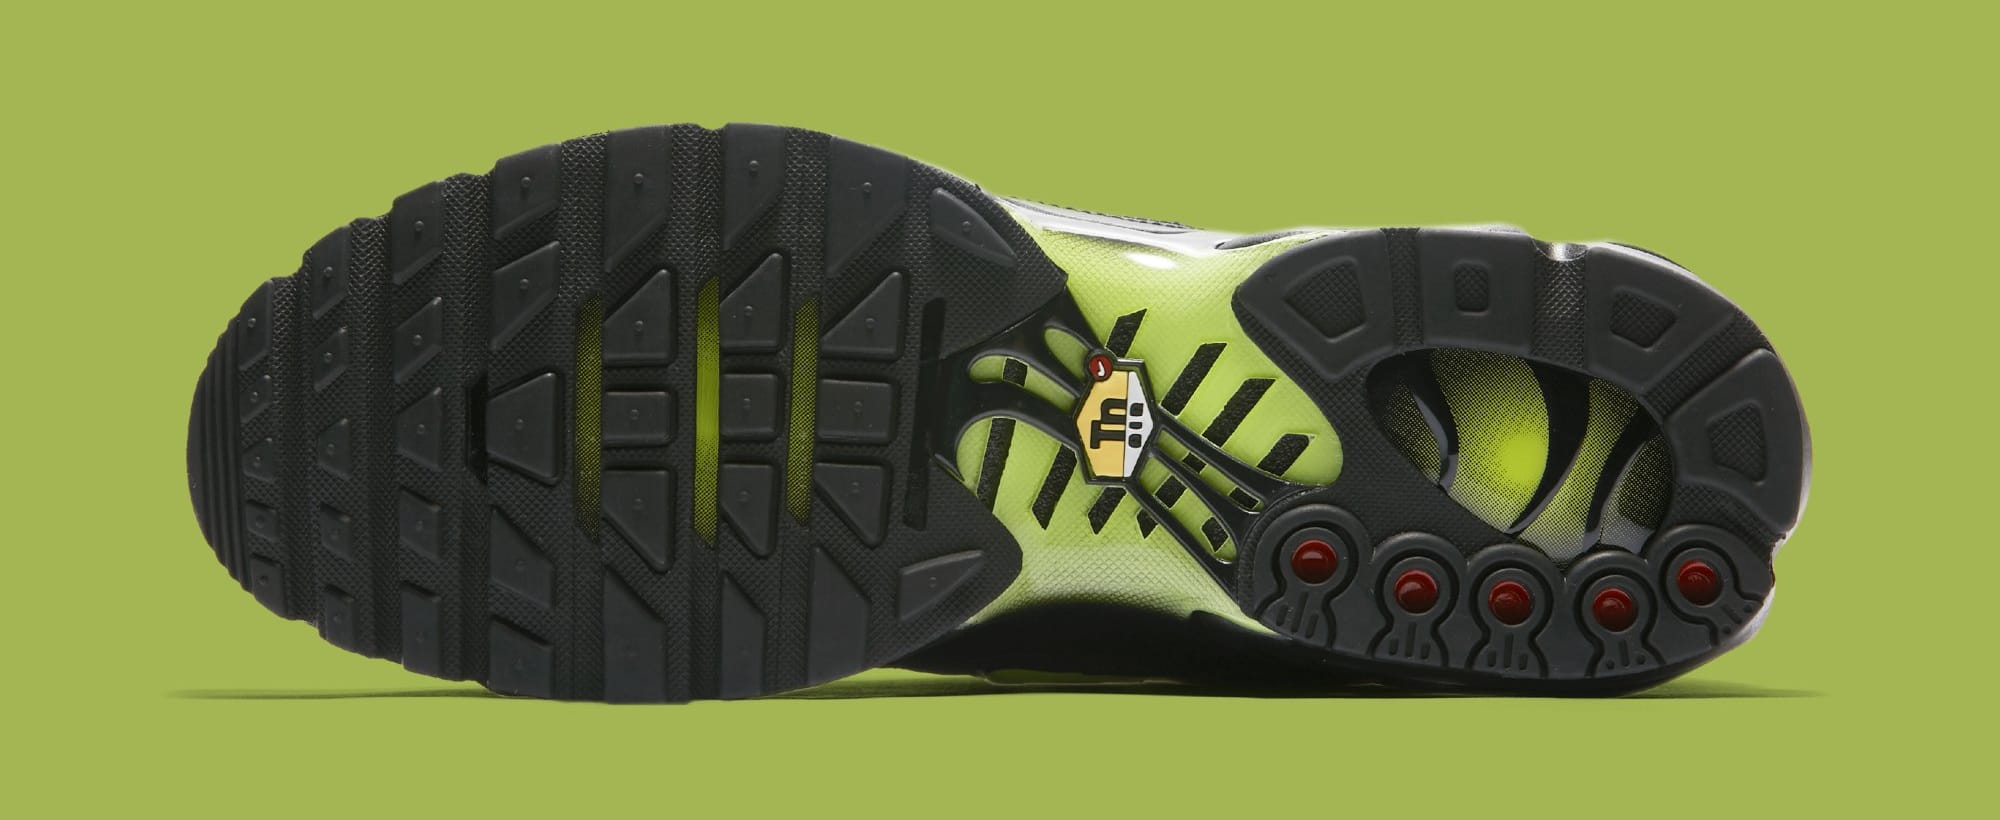 7aa3a9bad350 Image via Nike Nike Air Max Plus  Black Volt Glow-Wolf Grey  AJ2013-001